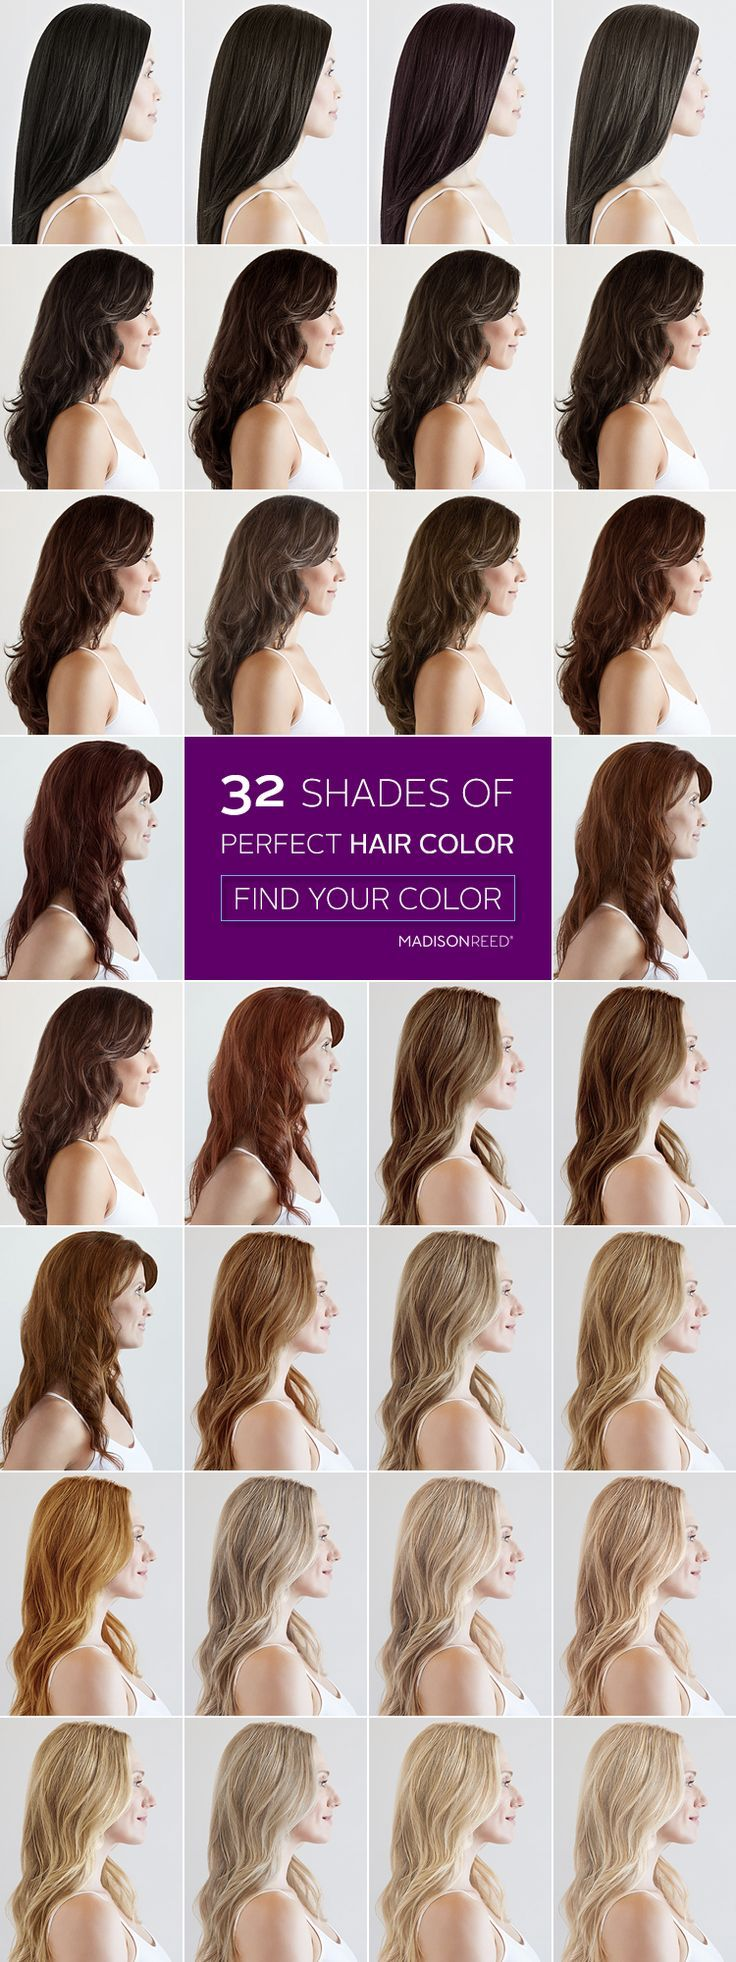 Get healthier #haircolor with gorgeous results. We removed damaging chemicals like ammonia and PPD, so there's no harsh chemical odor or burn when applied. We also added nourishing, naturally derived keratin, argan oil, and ginseng root extract, so your hair is softer, shinier and healthier after the coloring process. Choose from 32 shades to find your perfect color!